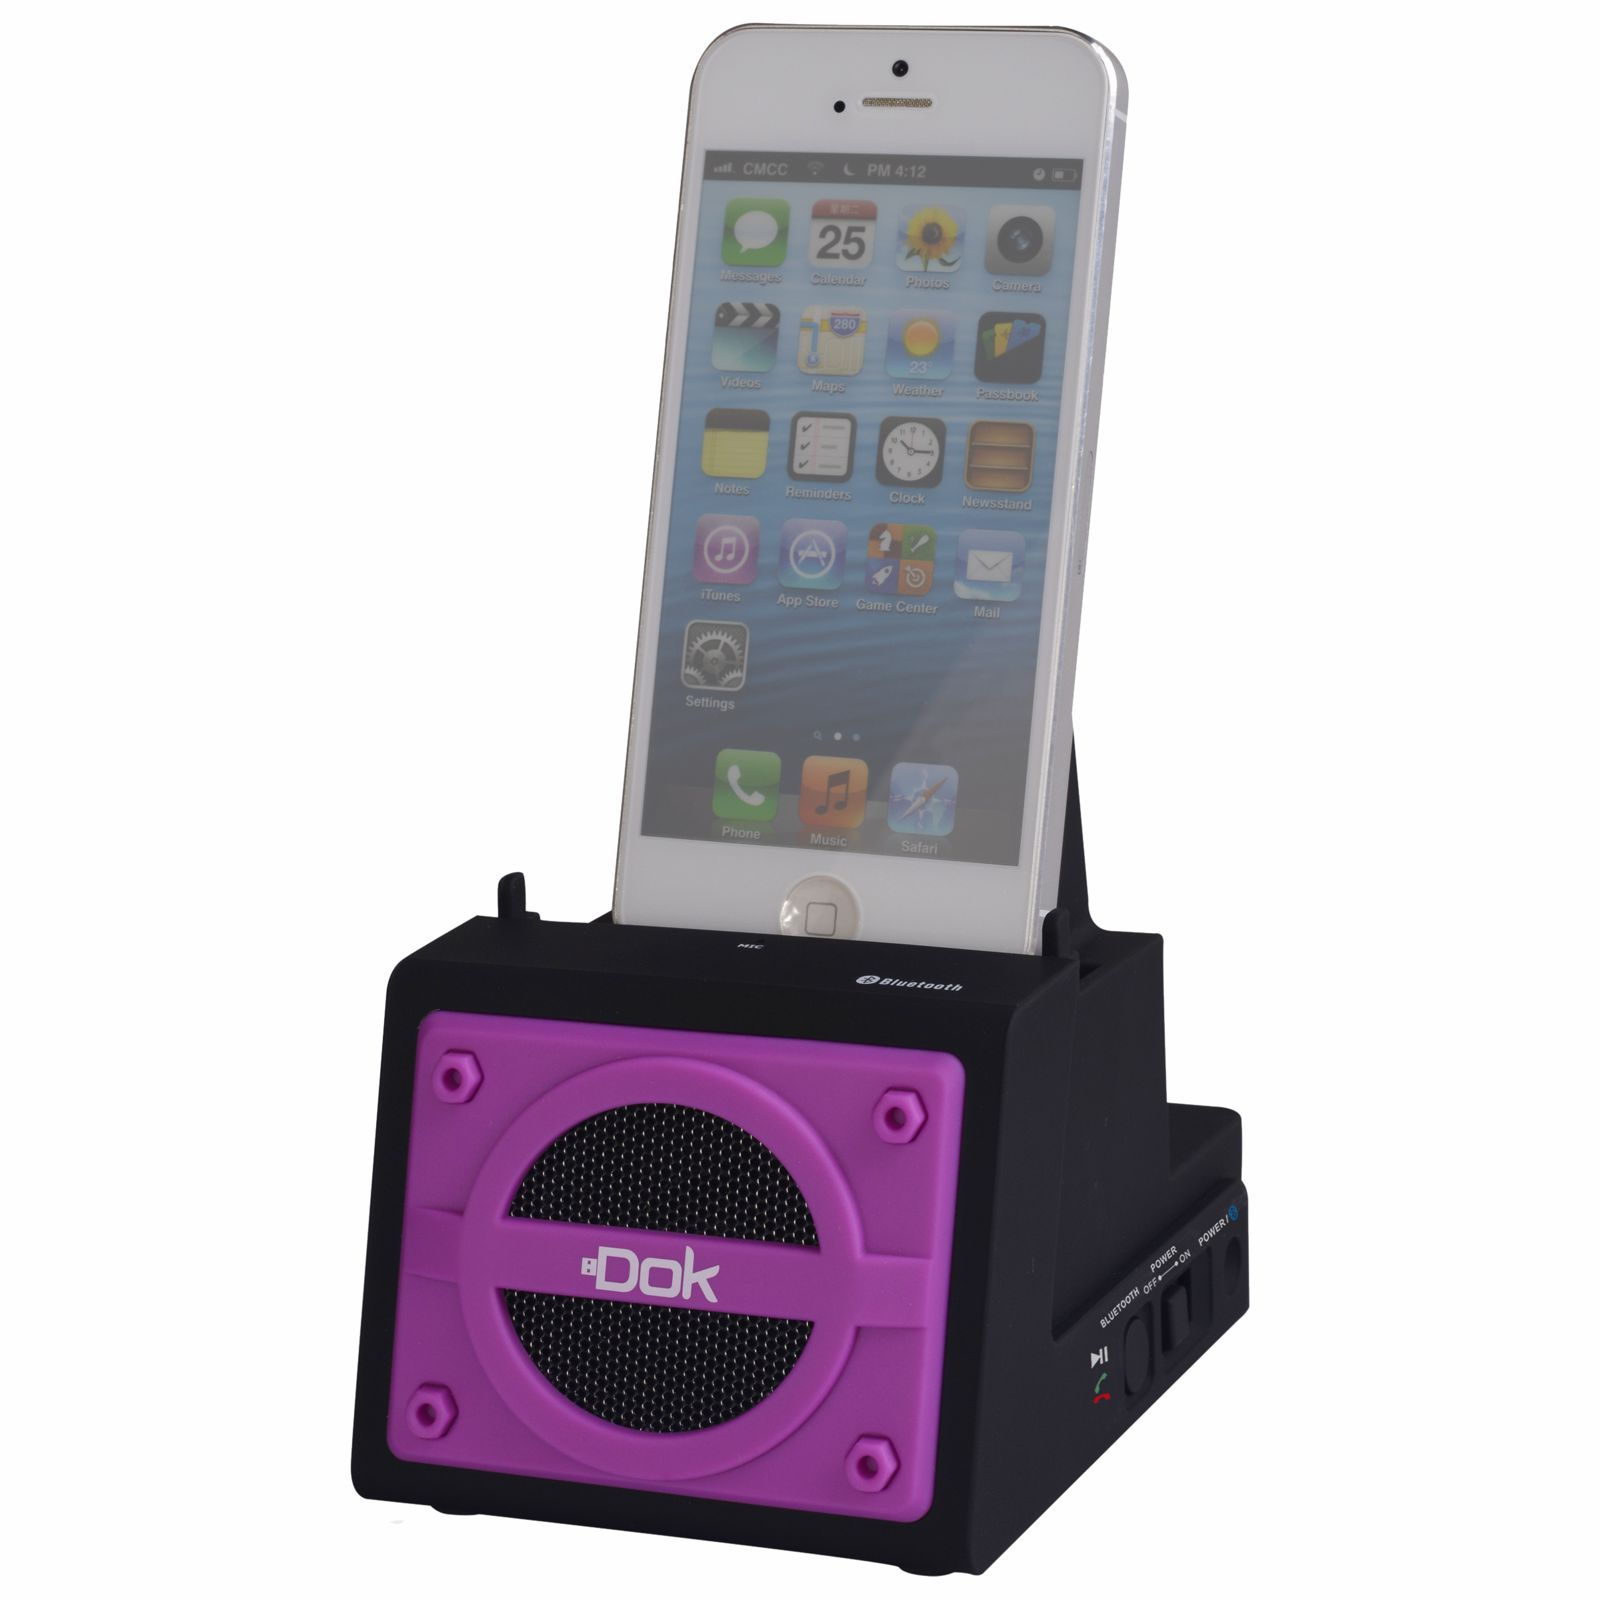 CR13PU - 2 Port Smart Phone Charger with Bluetooth Speaker, Speaker Phone, Rechargeable Battery (Purple Face)